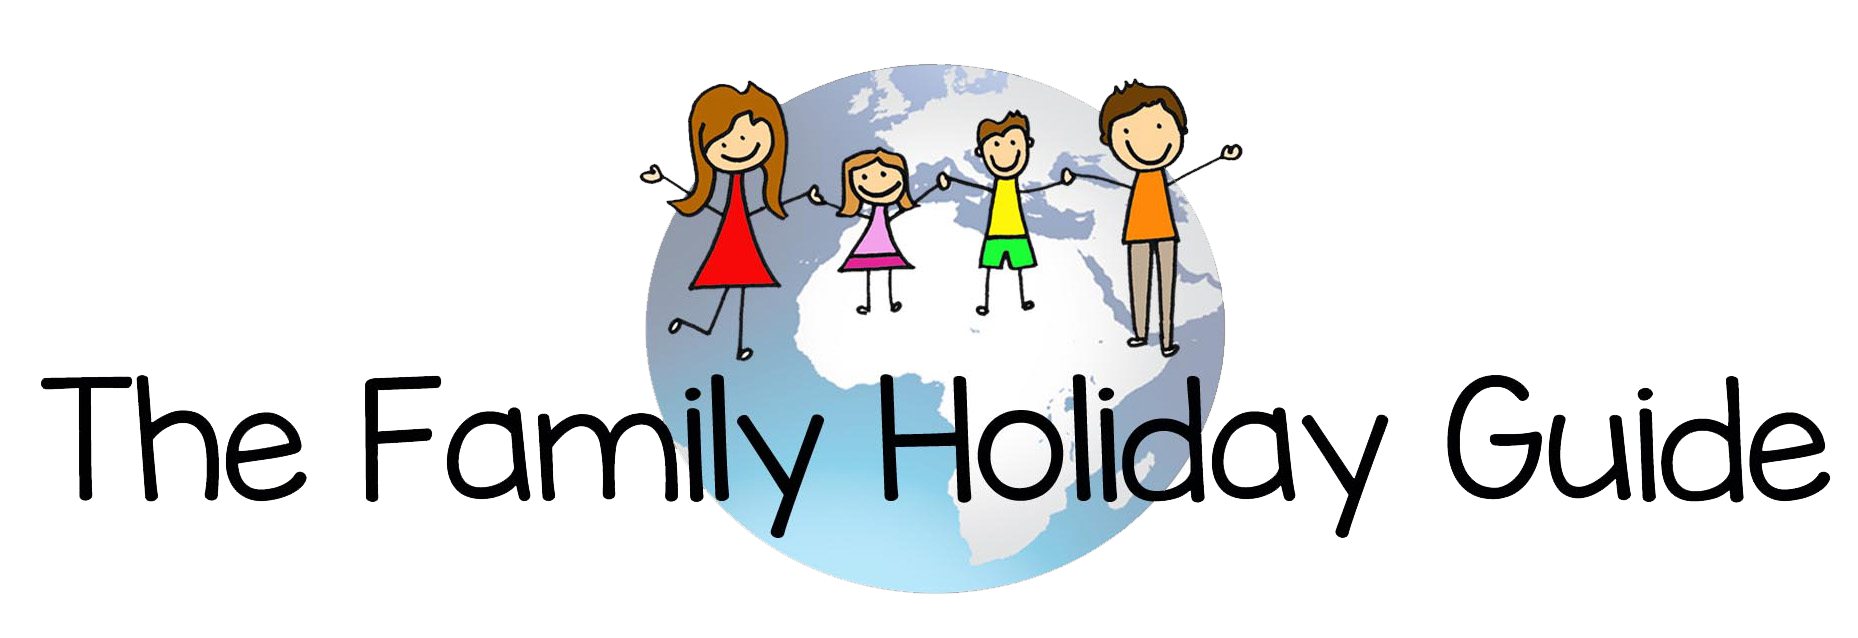 The Family Holiday Guide